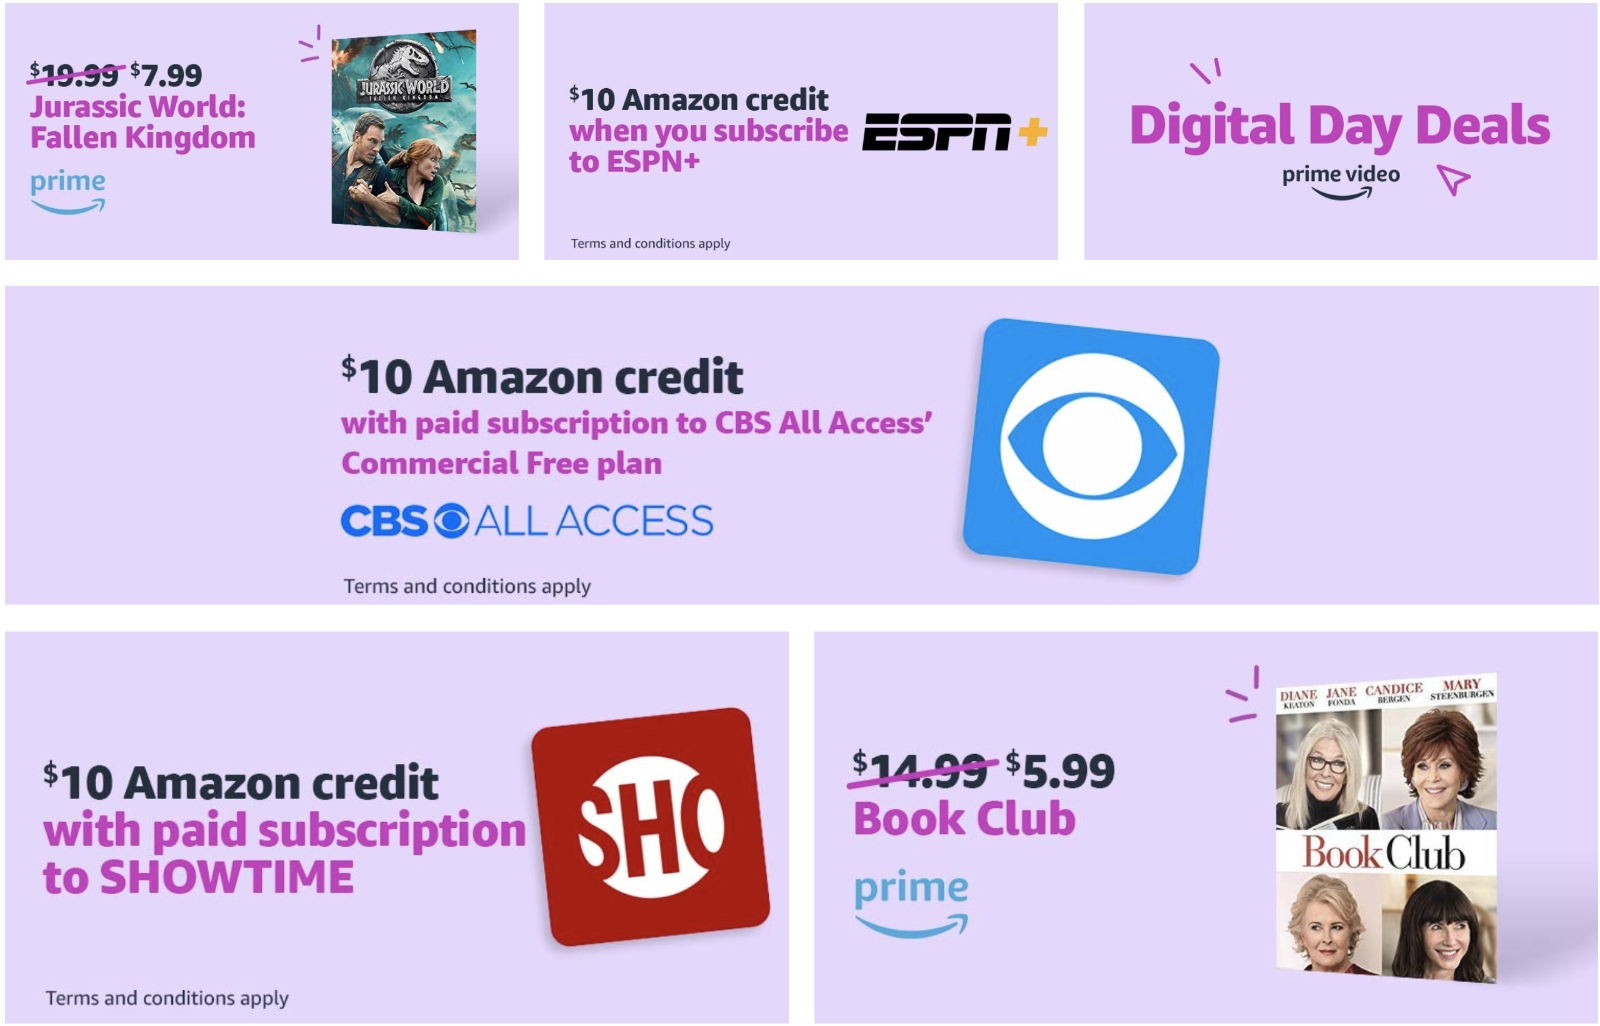 Amazon Digital Day Starts Today With Hot Deals On eBooks, Games, And Movies